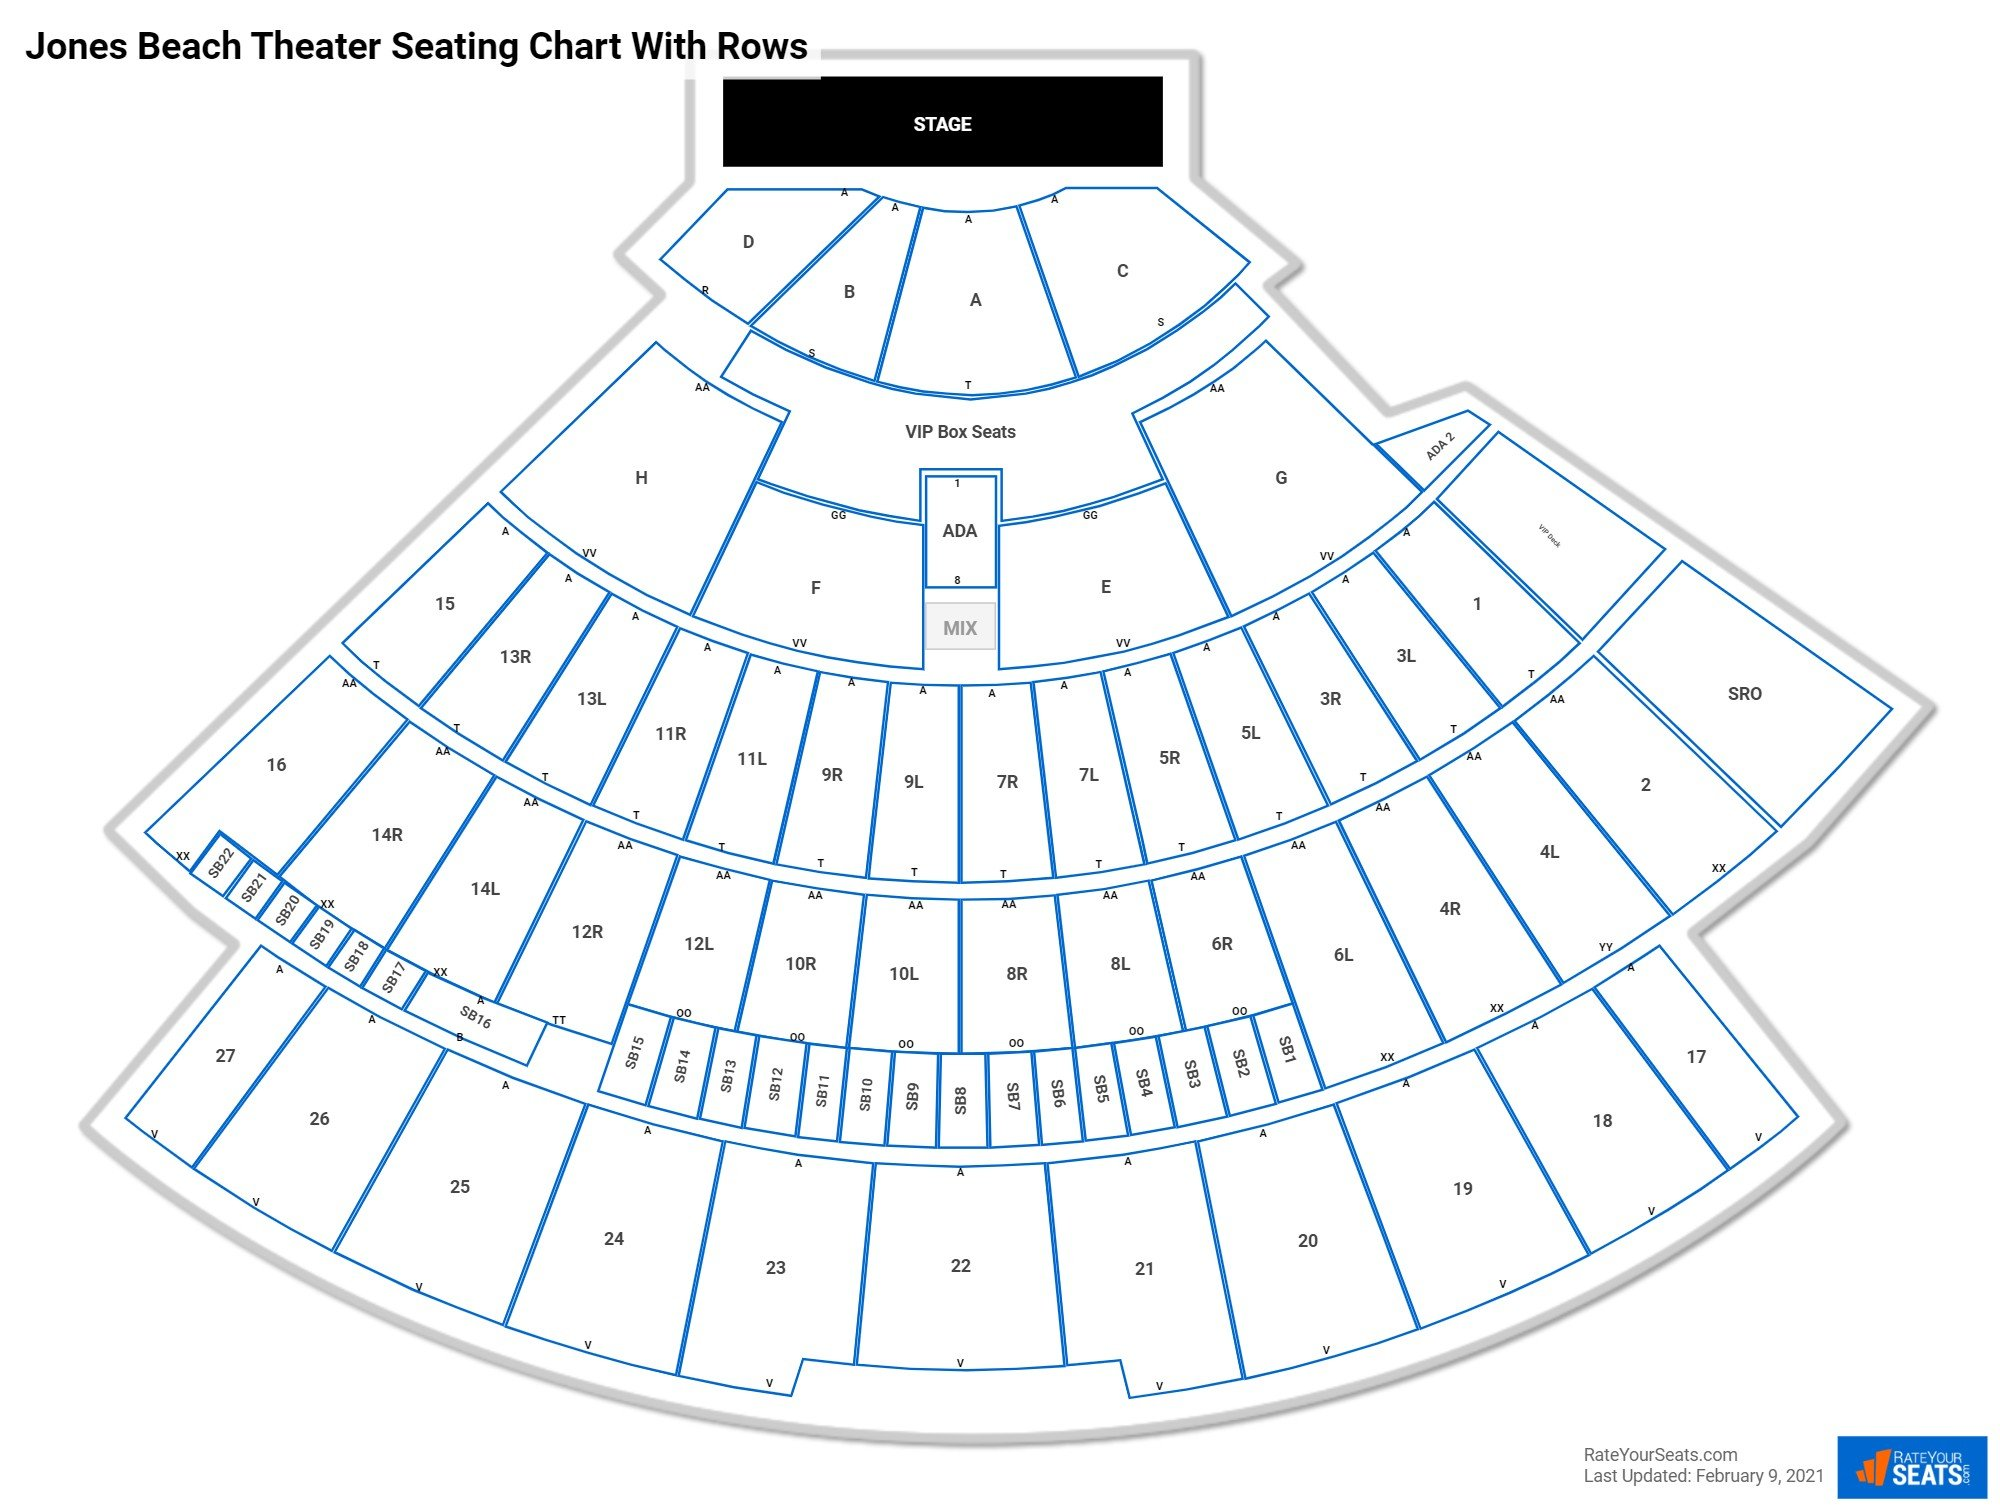 Jones Beach Theater seating chart with rows